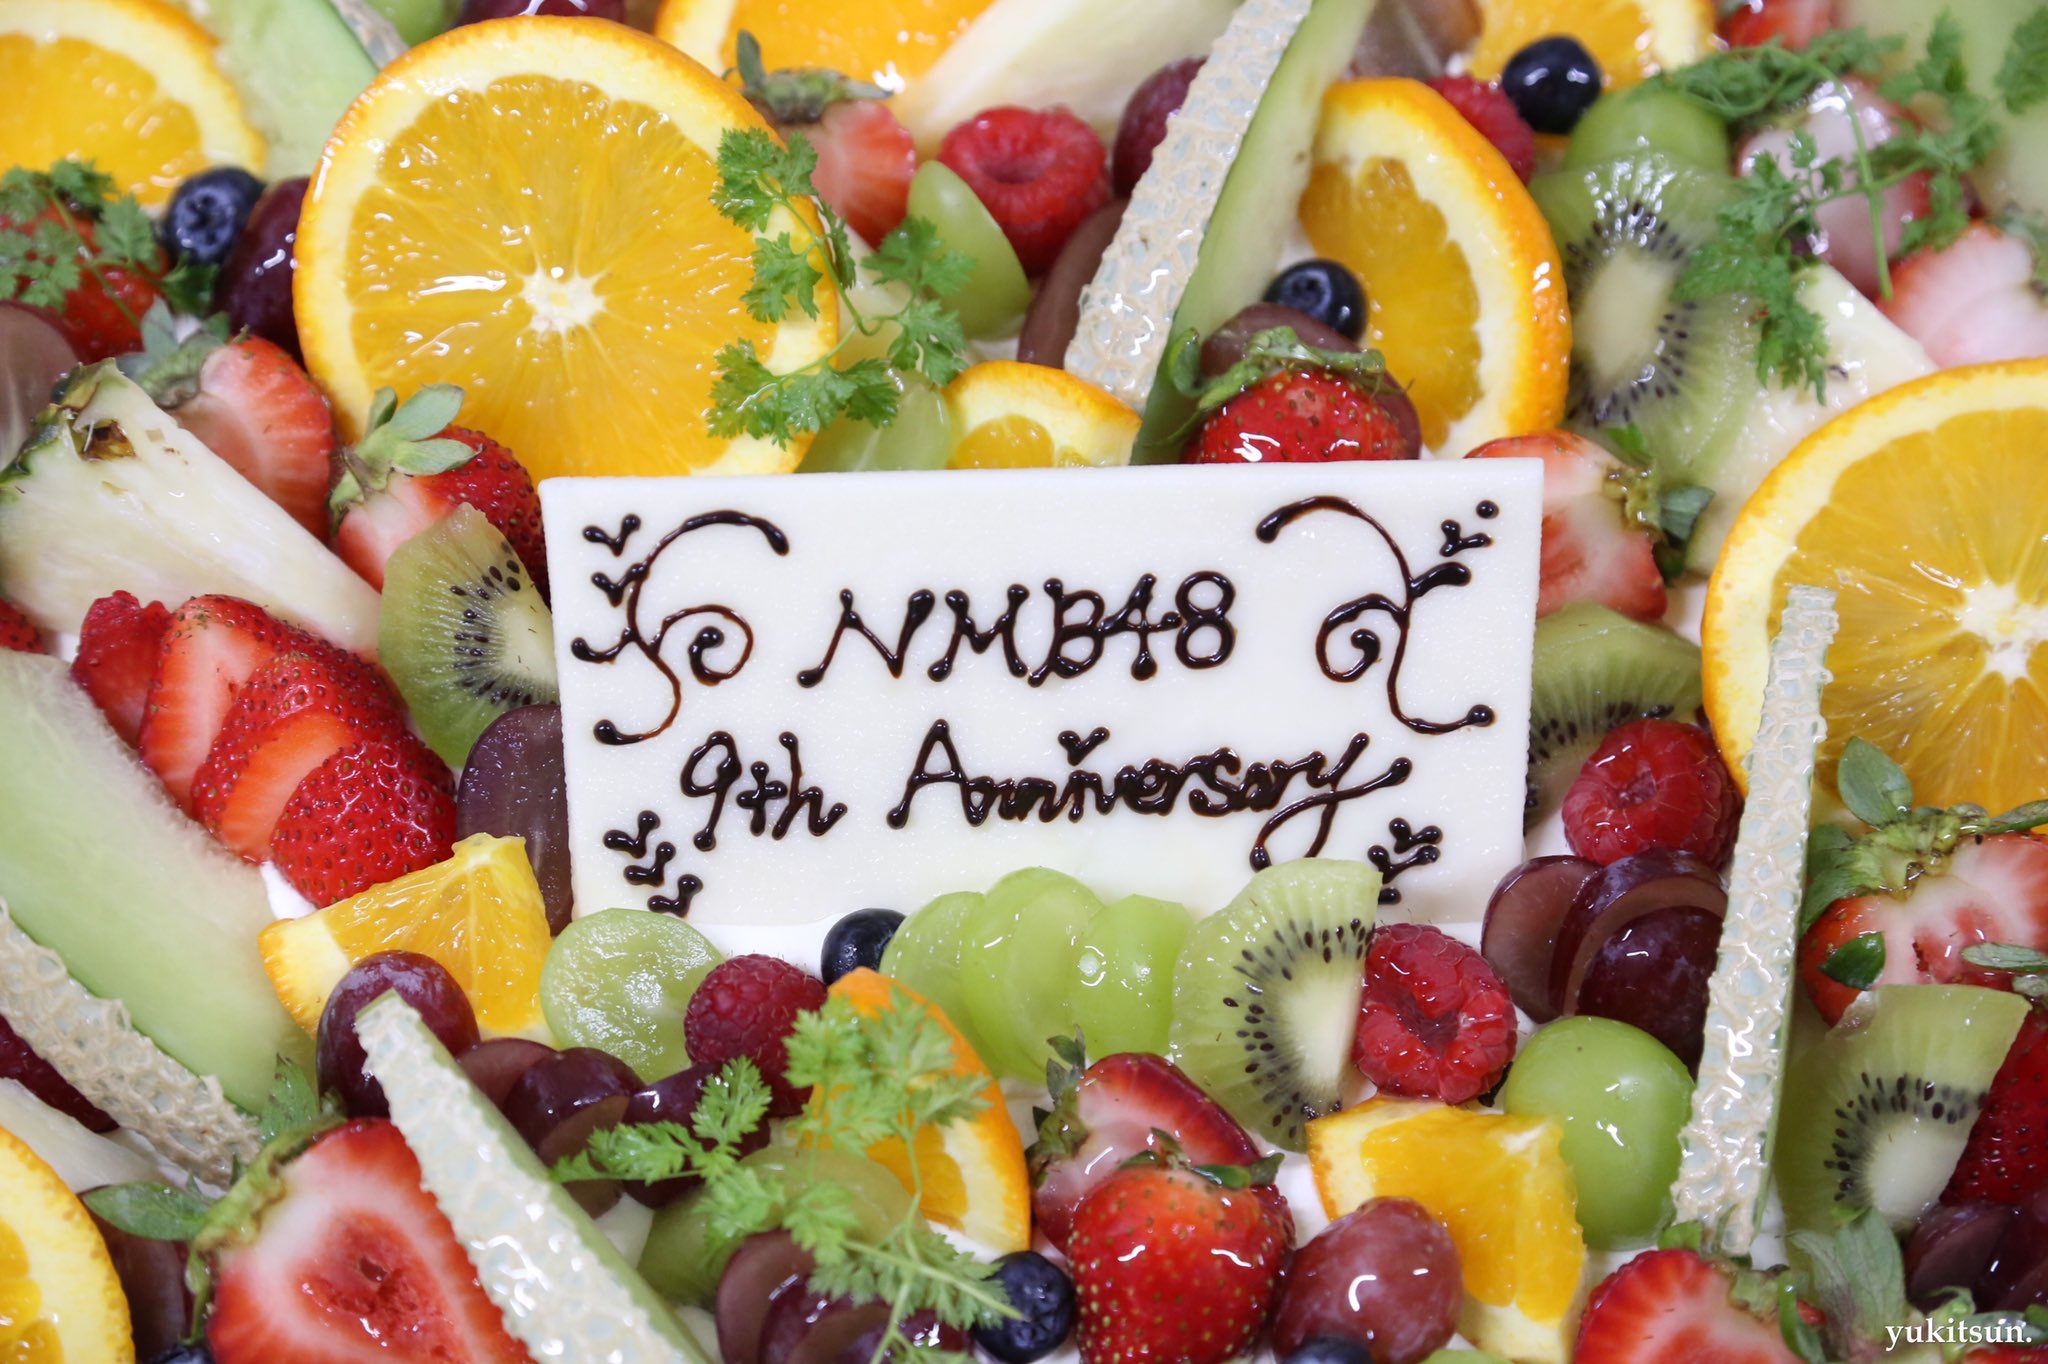 2019.10.5 NMB48 9th Anniversary LIVE